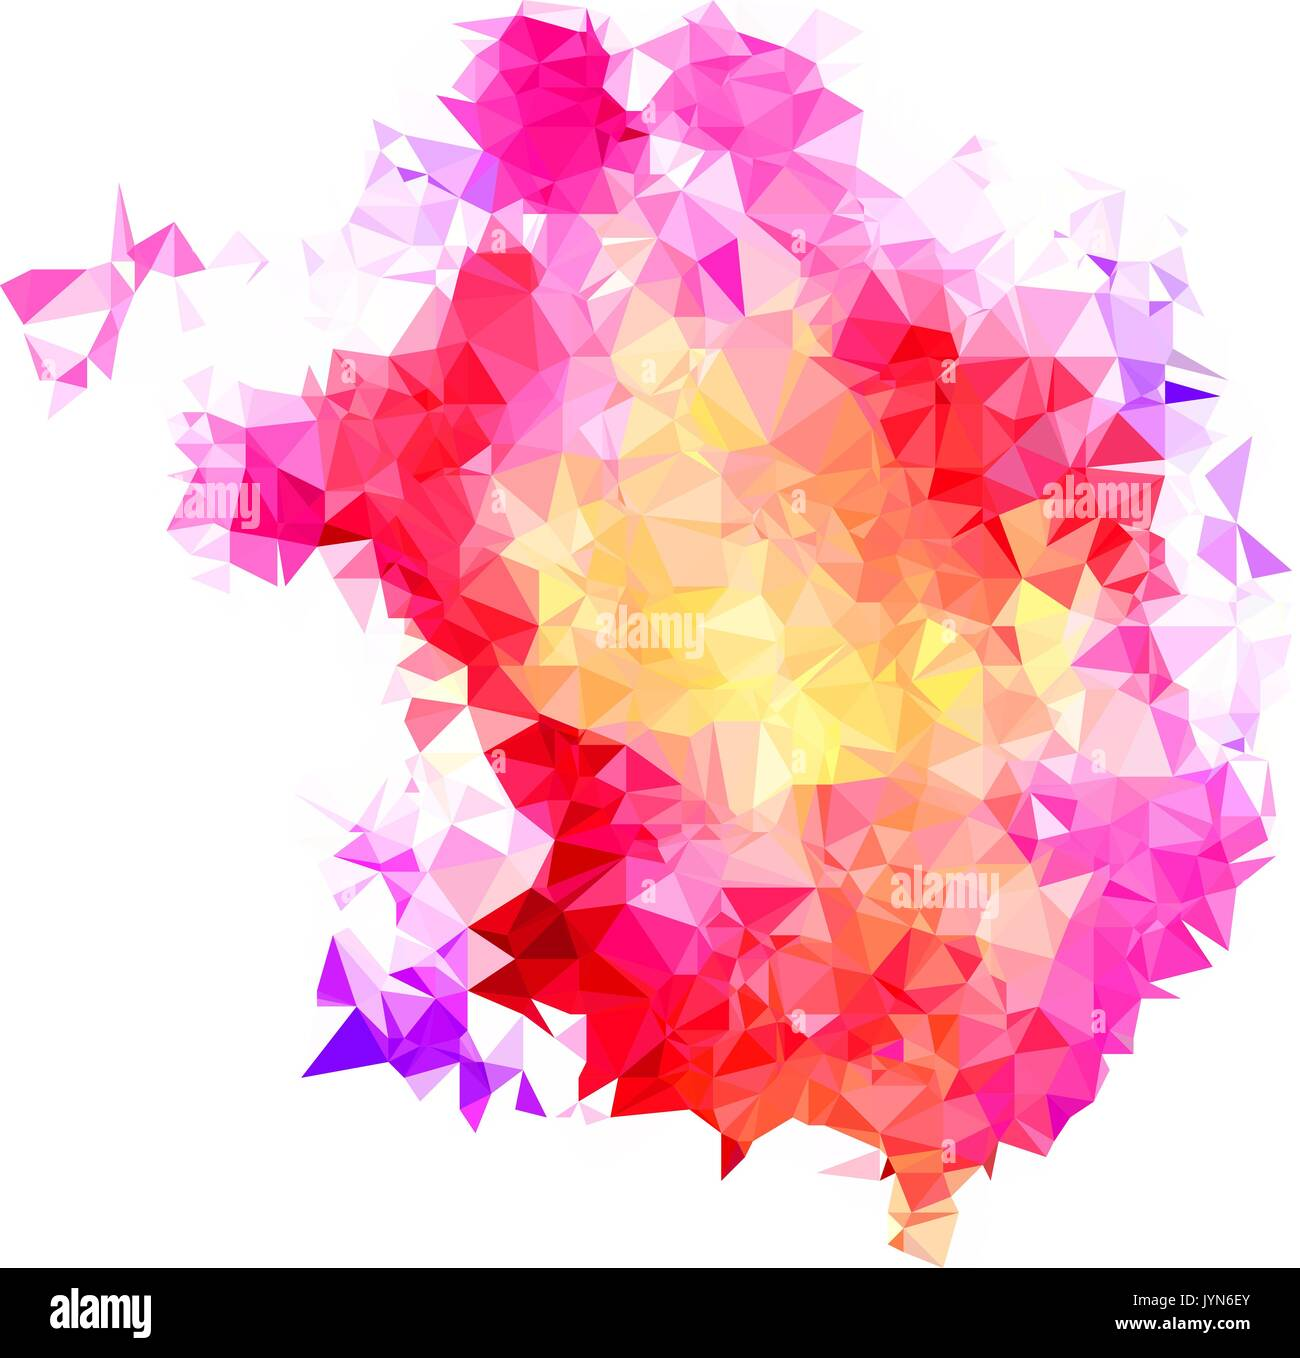 Abstract Color Splash Shape Triangulated Geometric Low Poly Stock